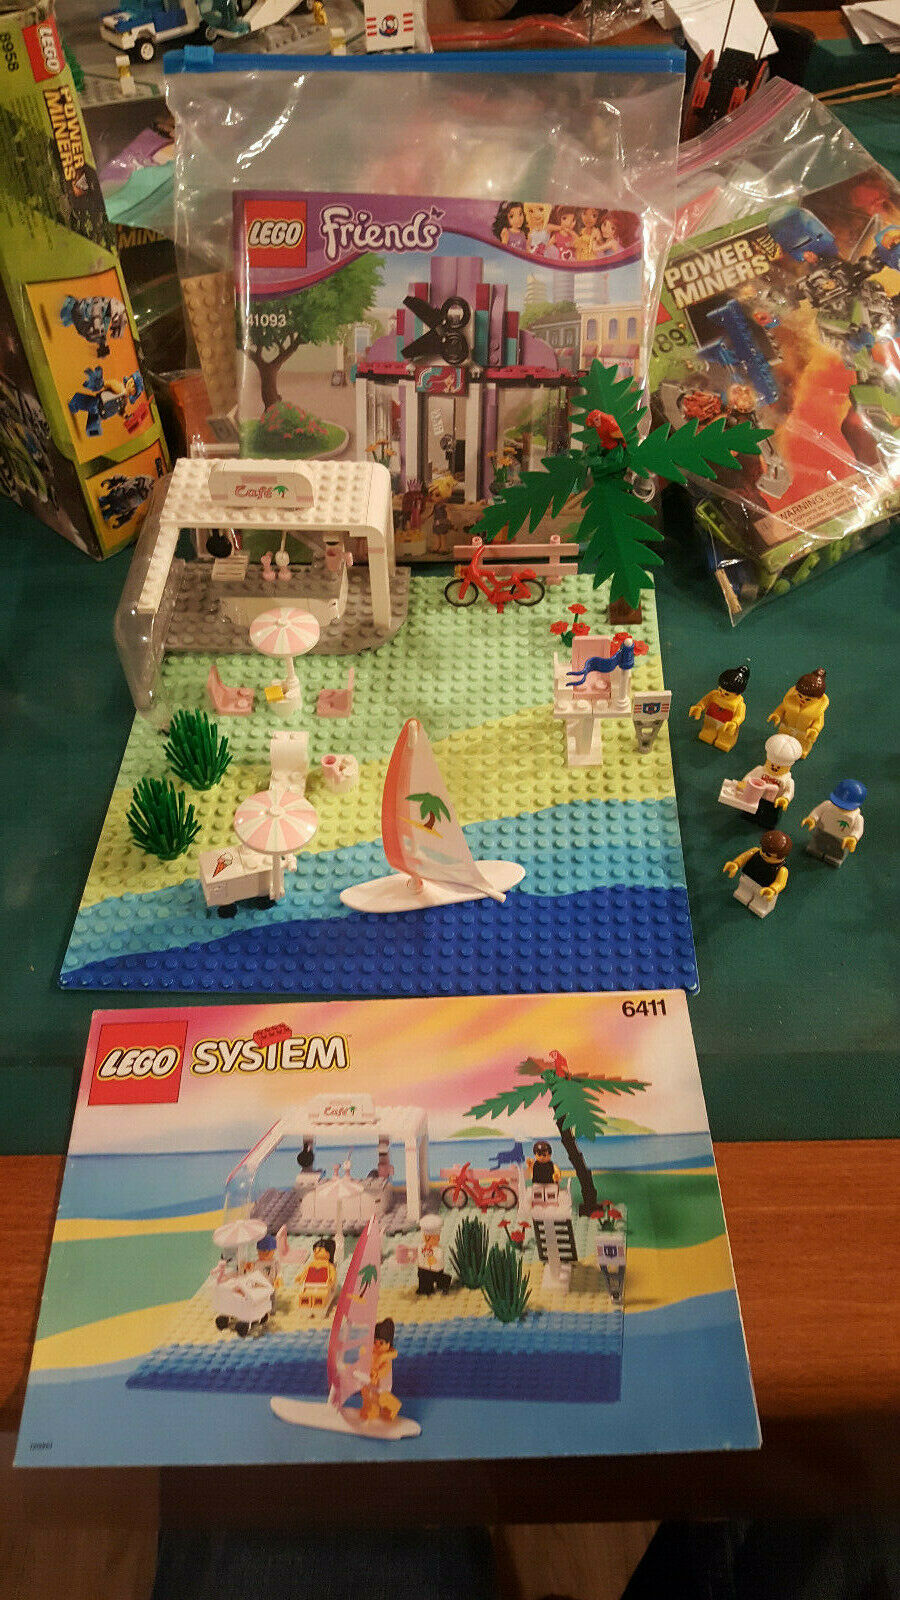 LEGO 6411 - Paradisa Sand Dollar Cafe - 100% Complete with Instructions - No Box